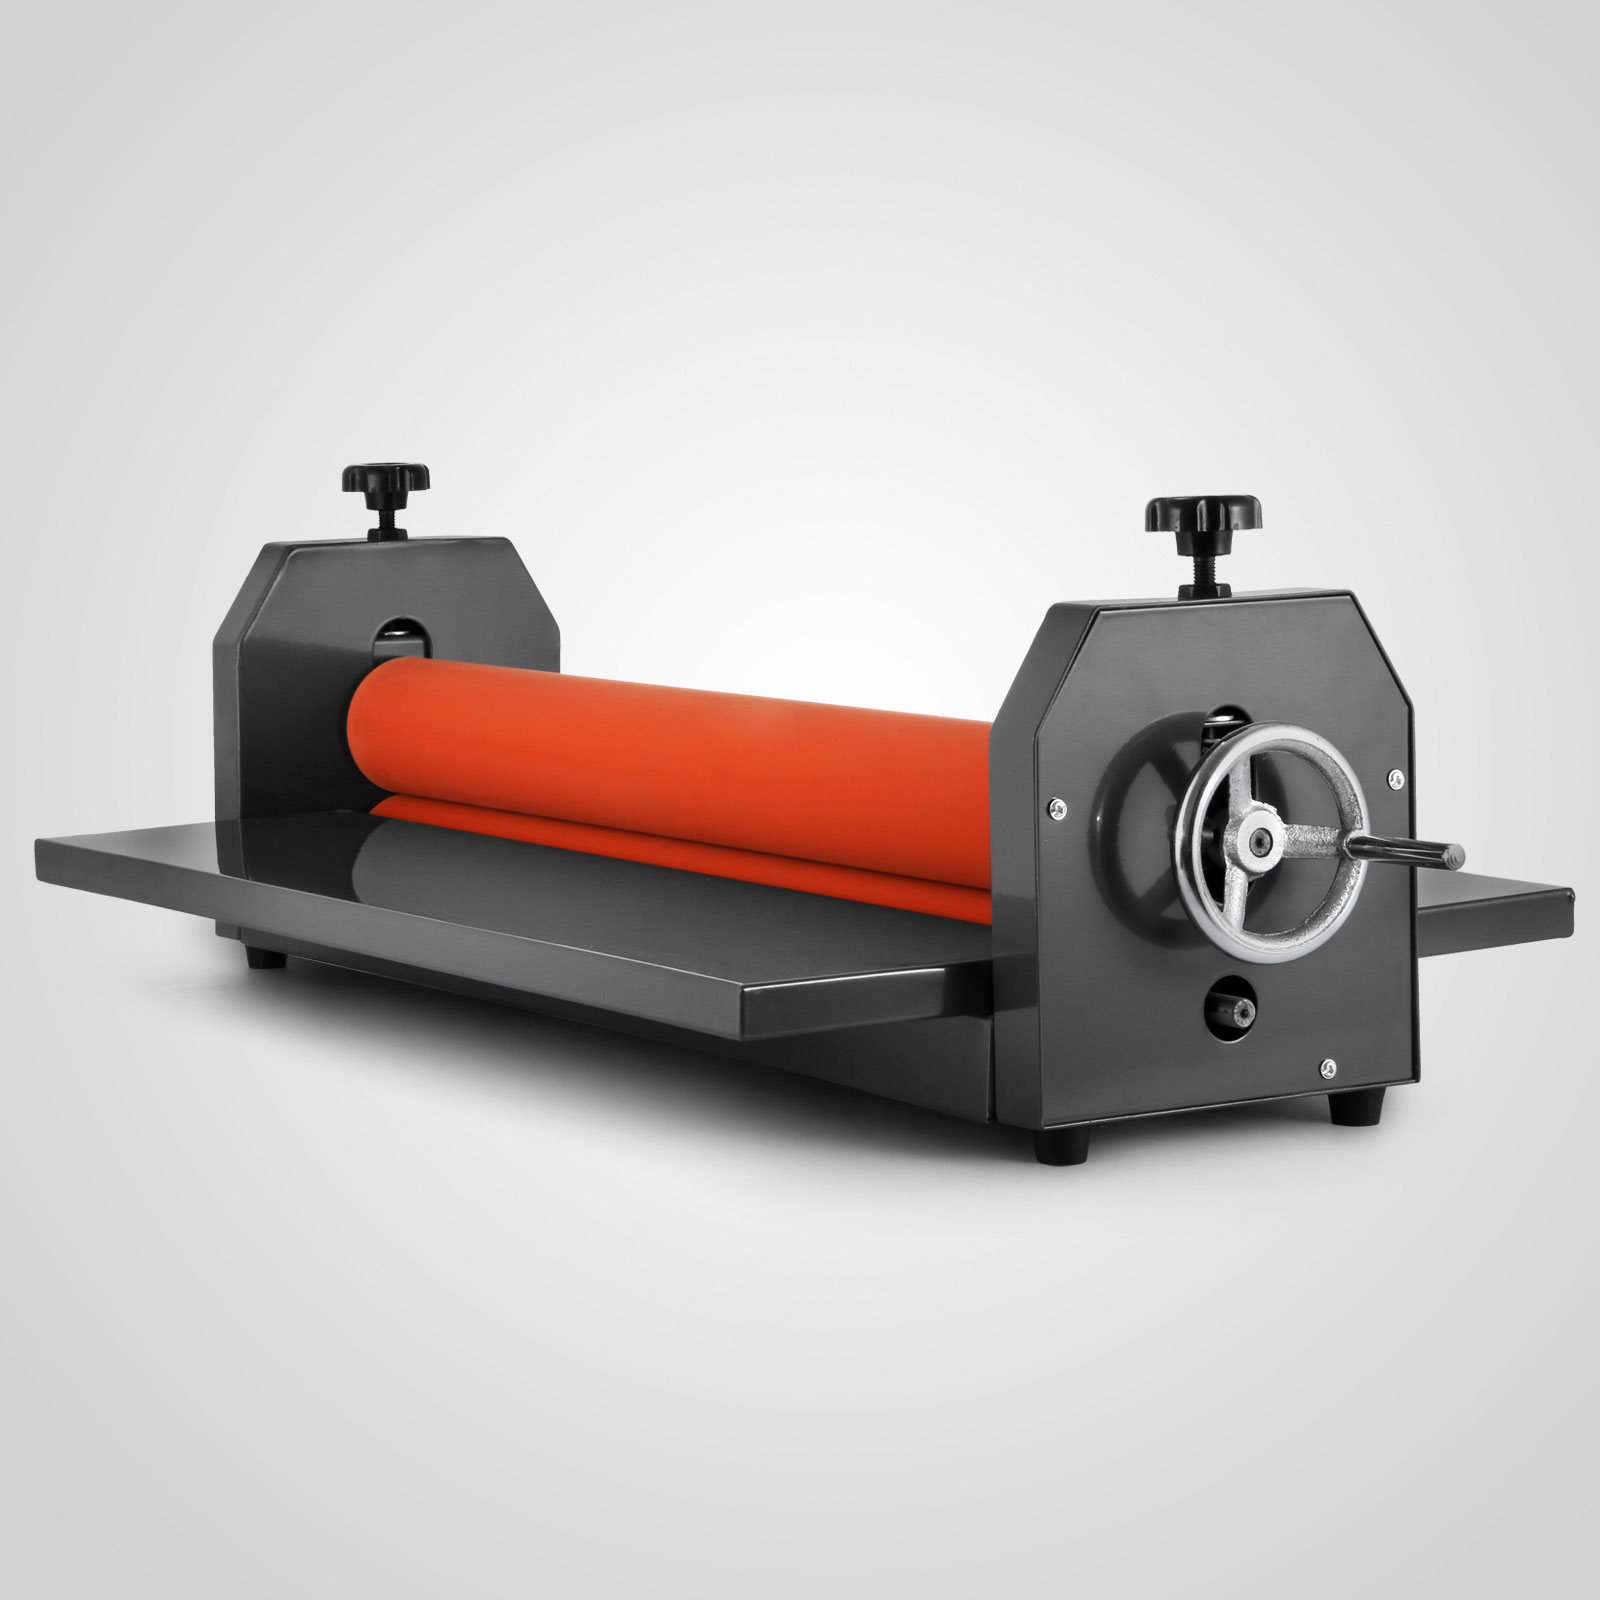 Manual Cold Roll Mount Laminator 29 5 Inch Laminating